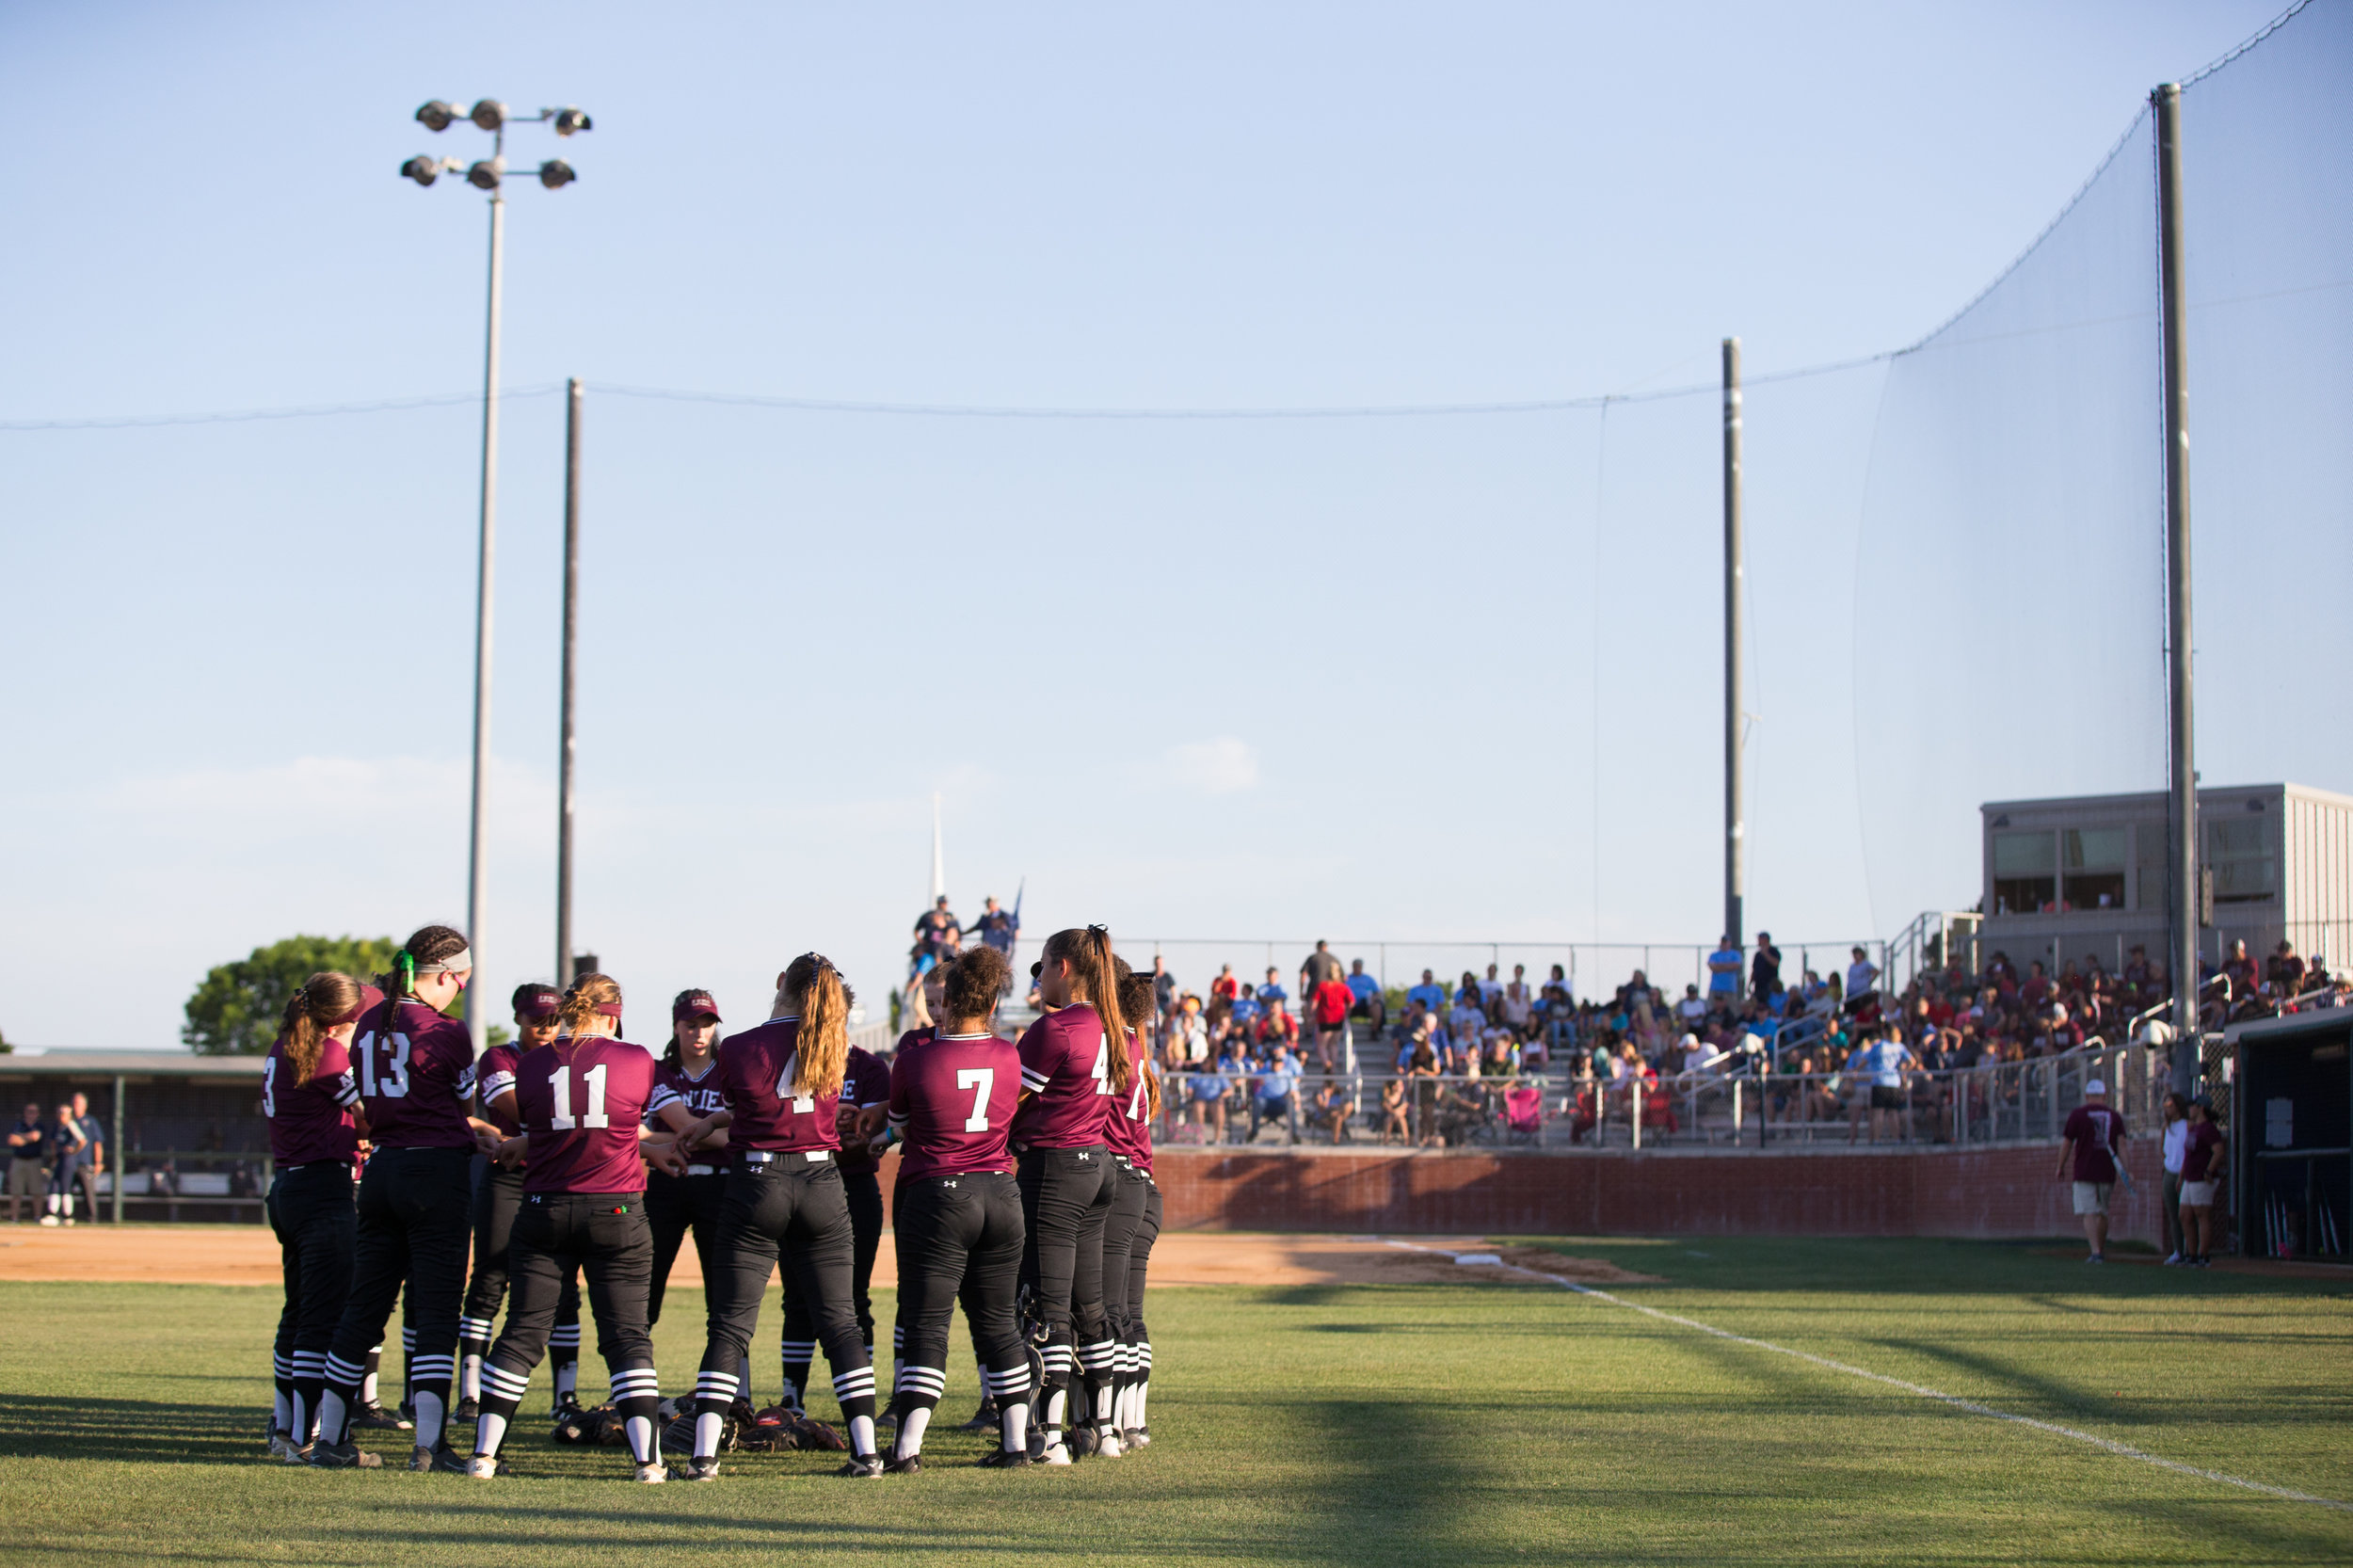 5_18 Wylie Softball-118.jpg